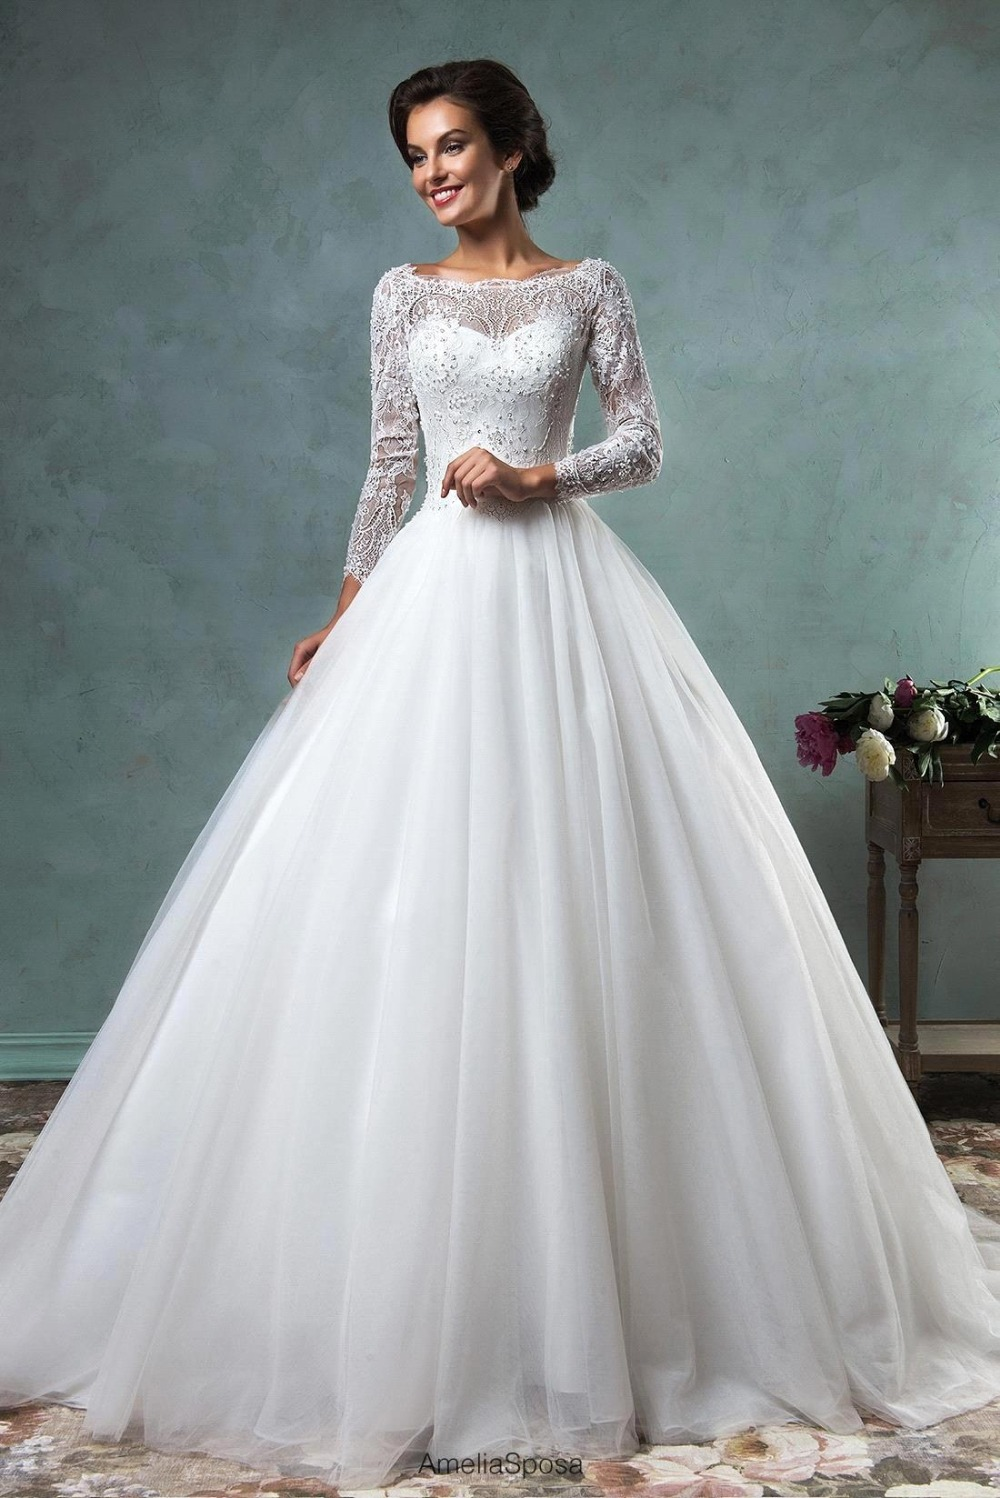 Cute White Princess Gowns Images - Images for wedding gown ideas ...